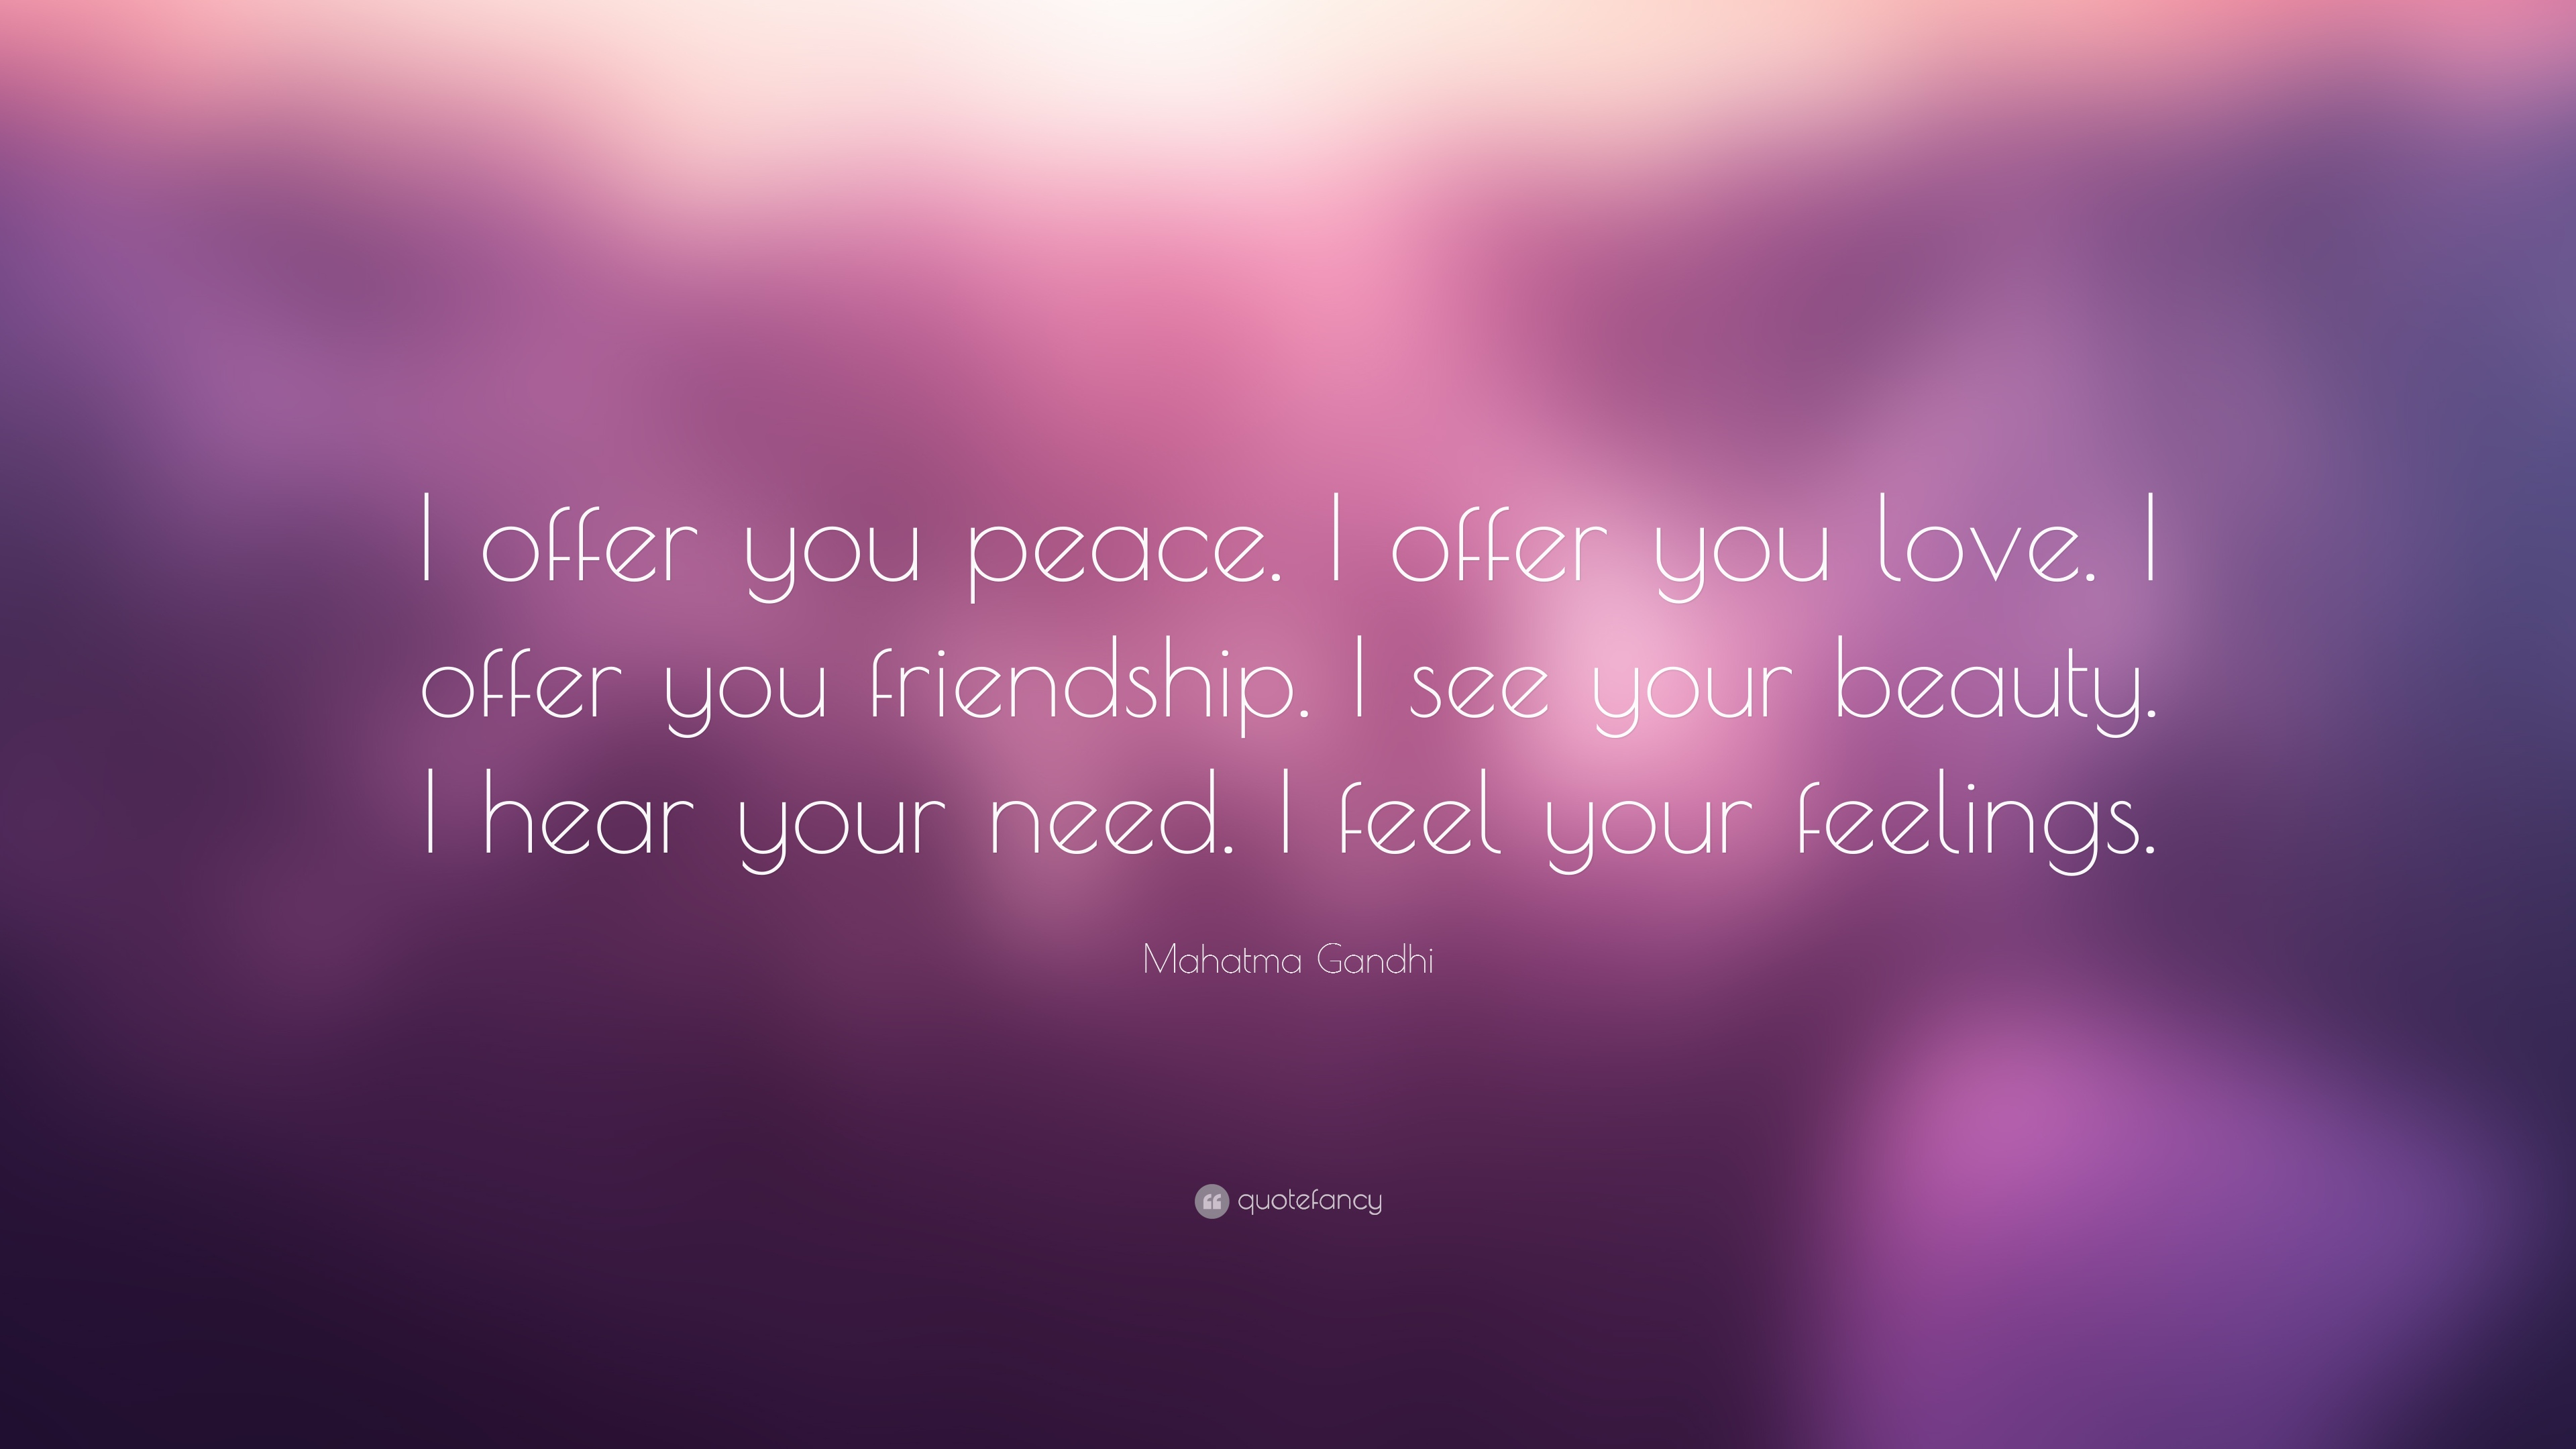 Quotes About Peace And Love Peace Quotes 40 Wallpapers  Quotefancy